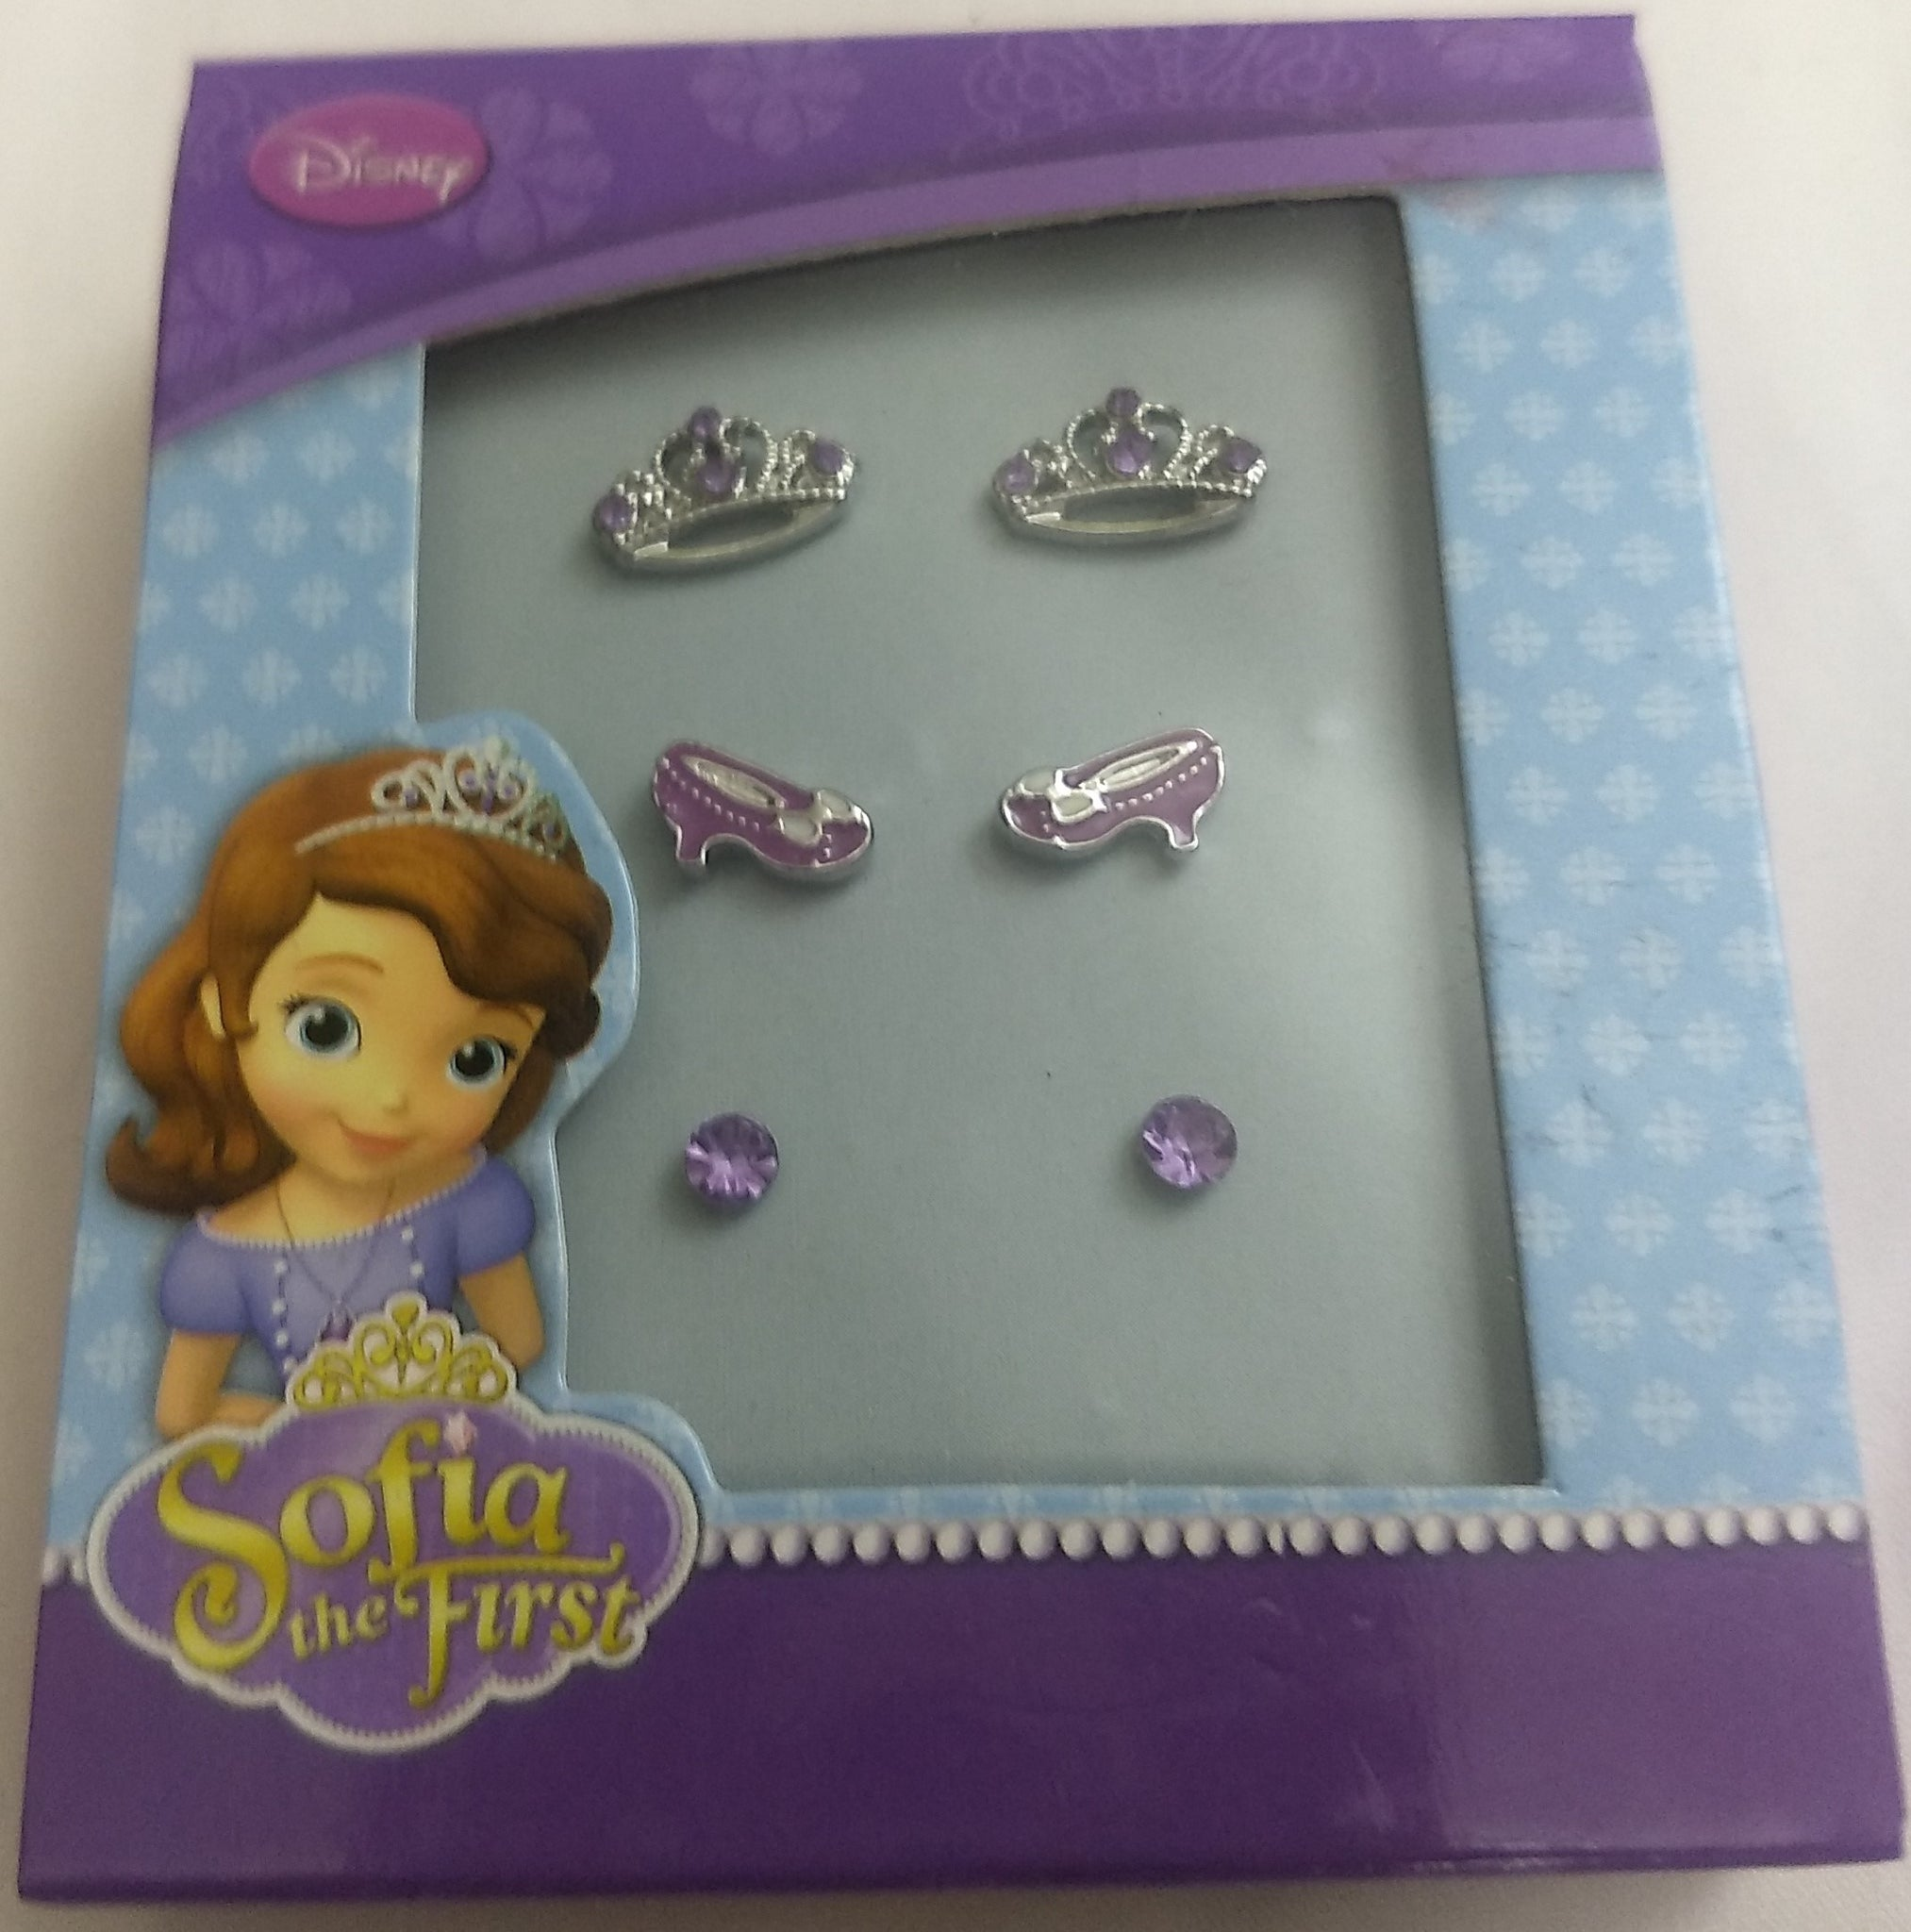 Disney Princess Sofia The First Earrings 3 pack